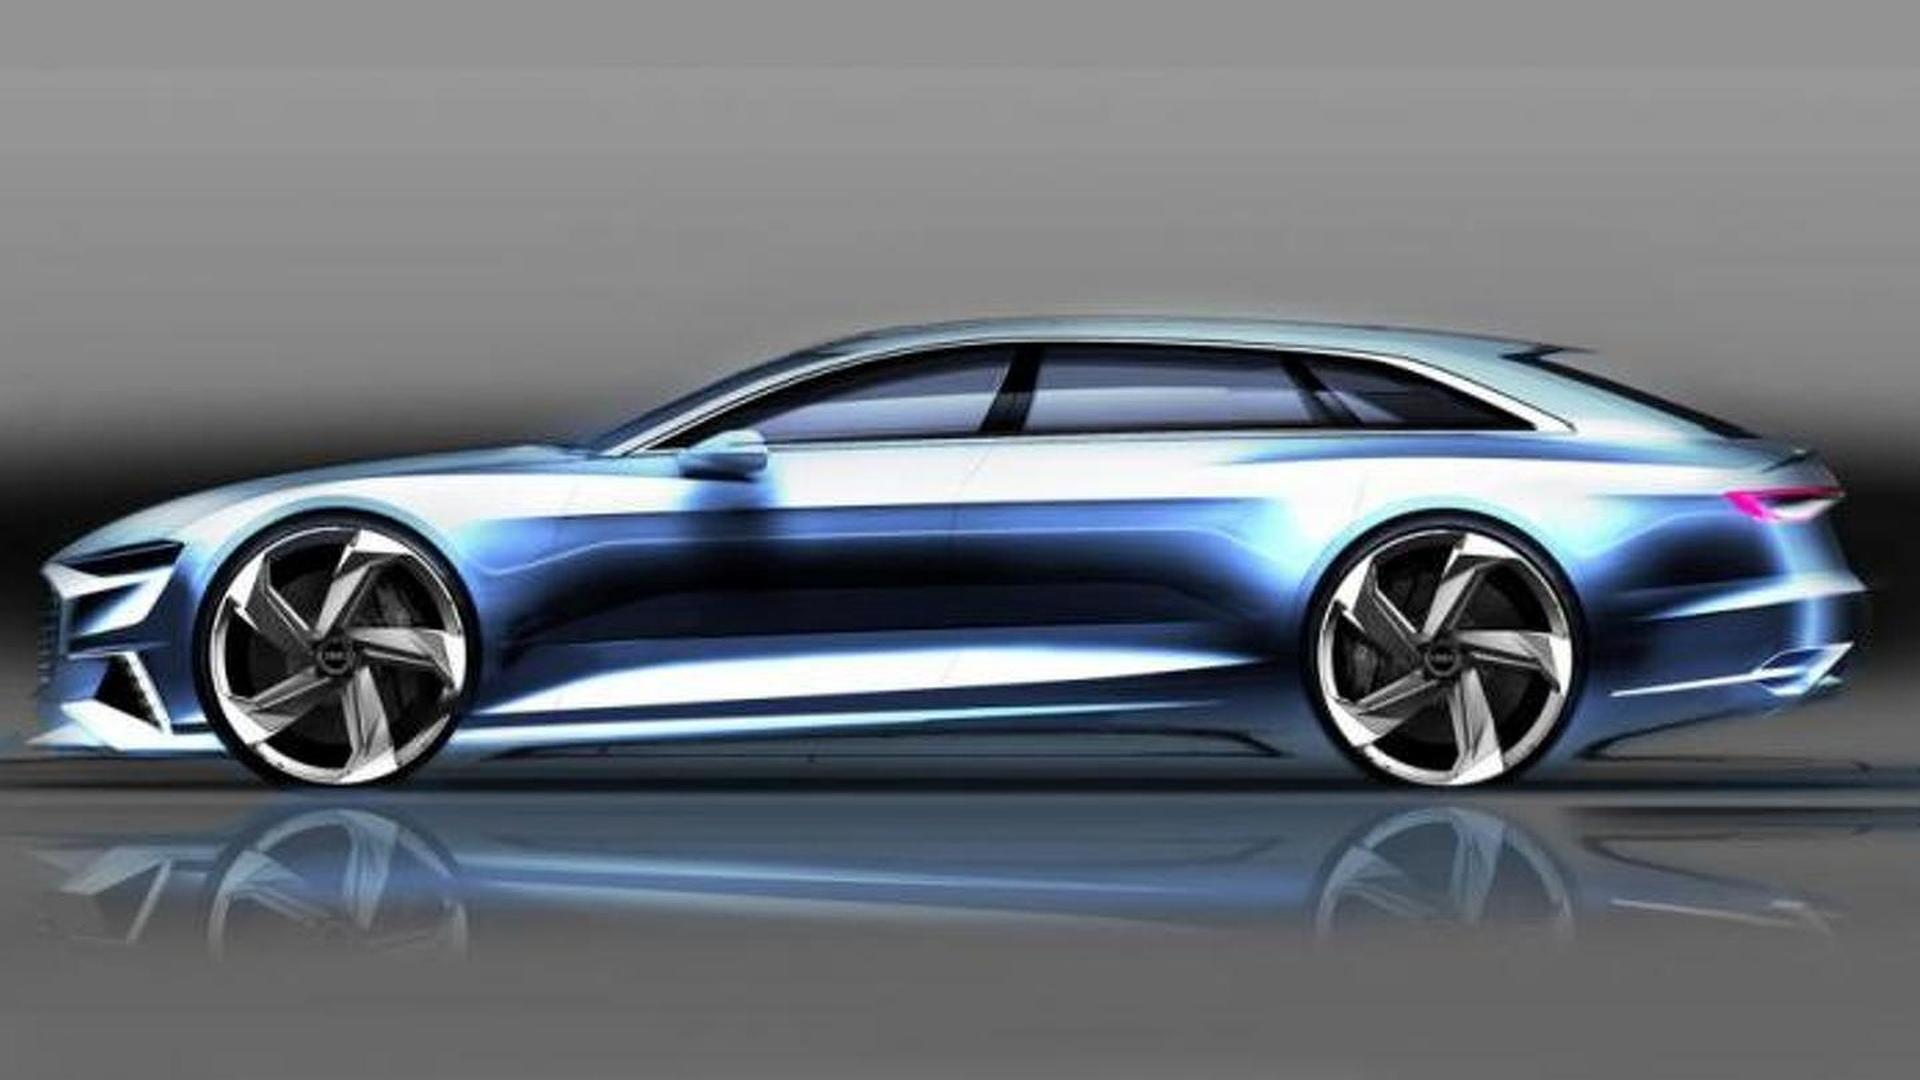 Audi Prologue Avant concept teased ahead of Geneva reveal